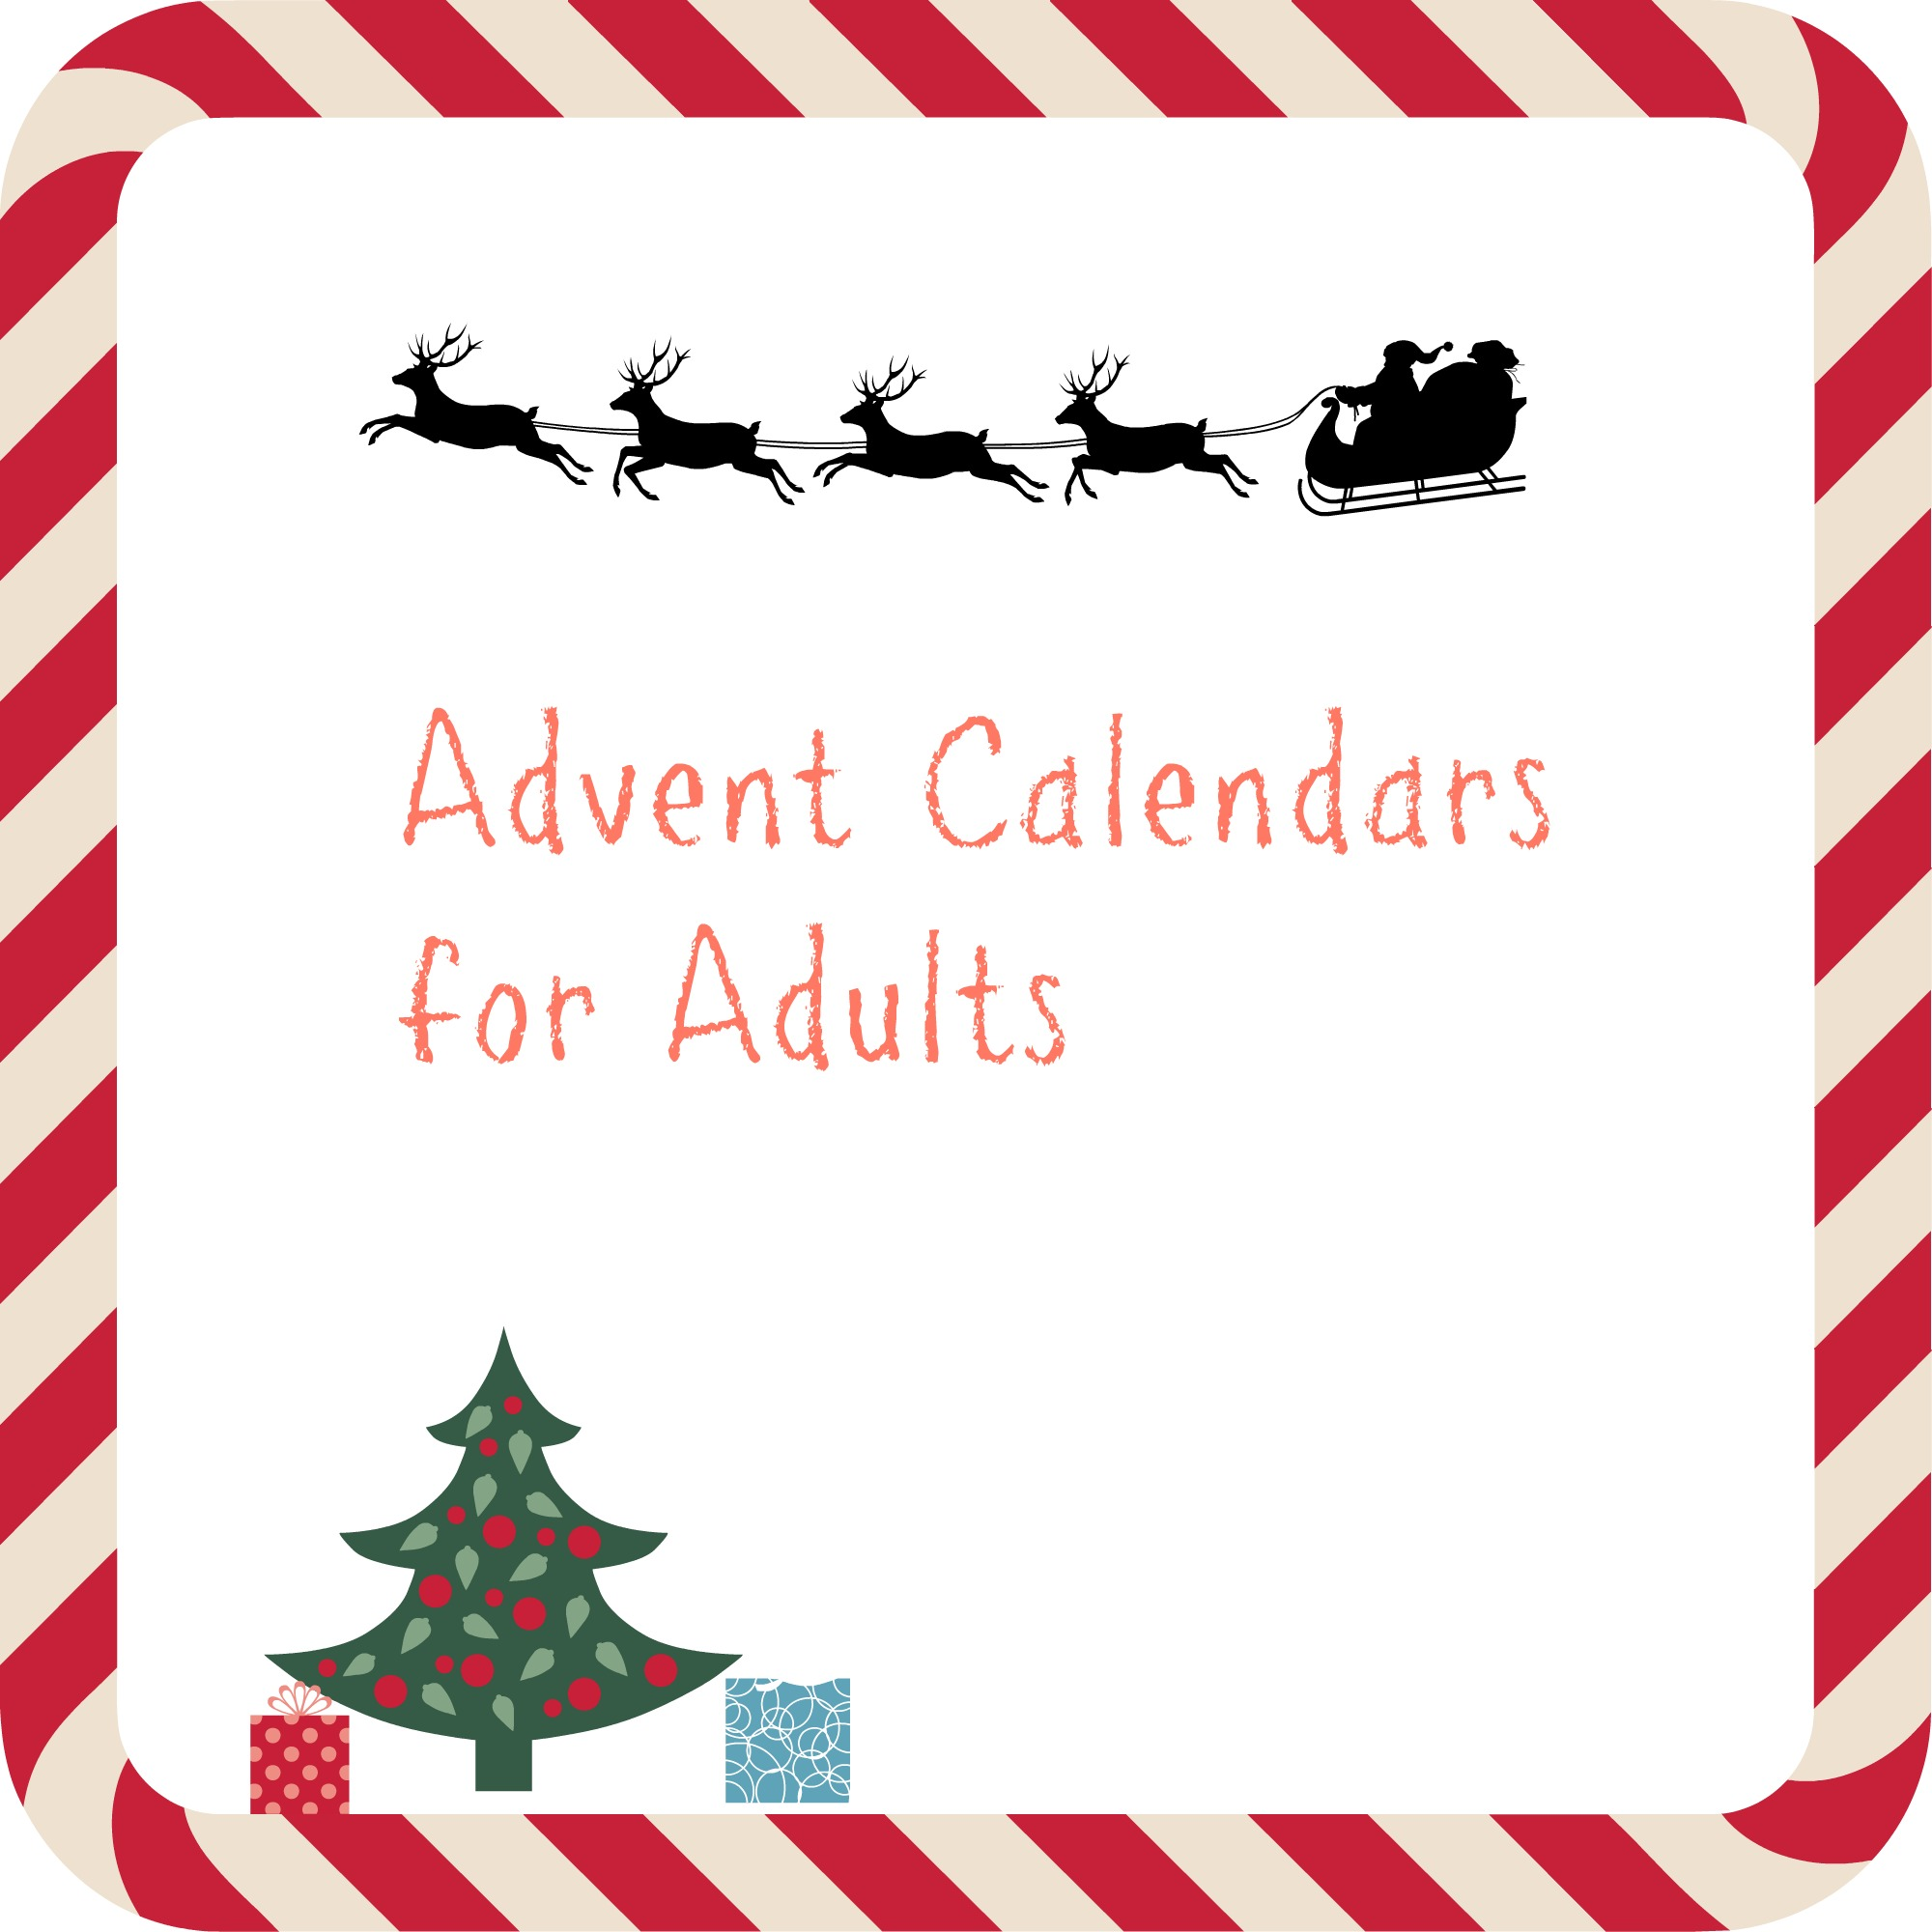 Advent calendars for adults mum thats me for Advent crafts for adults